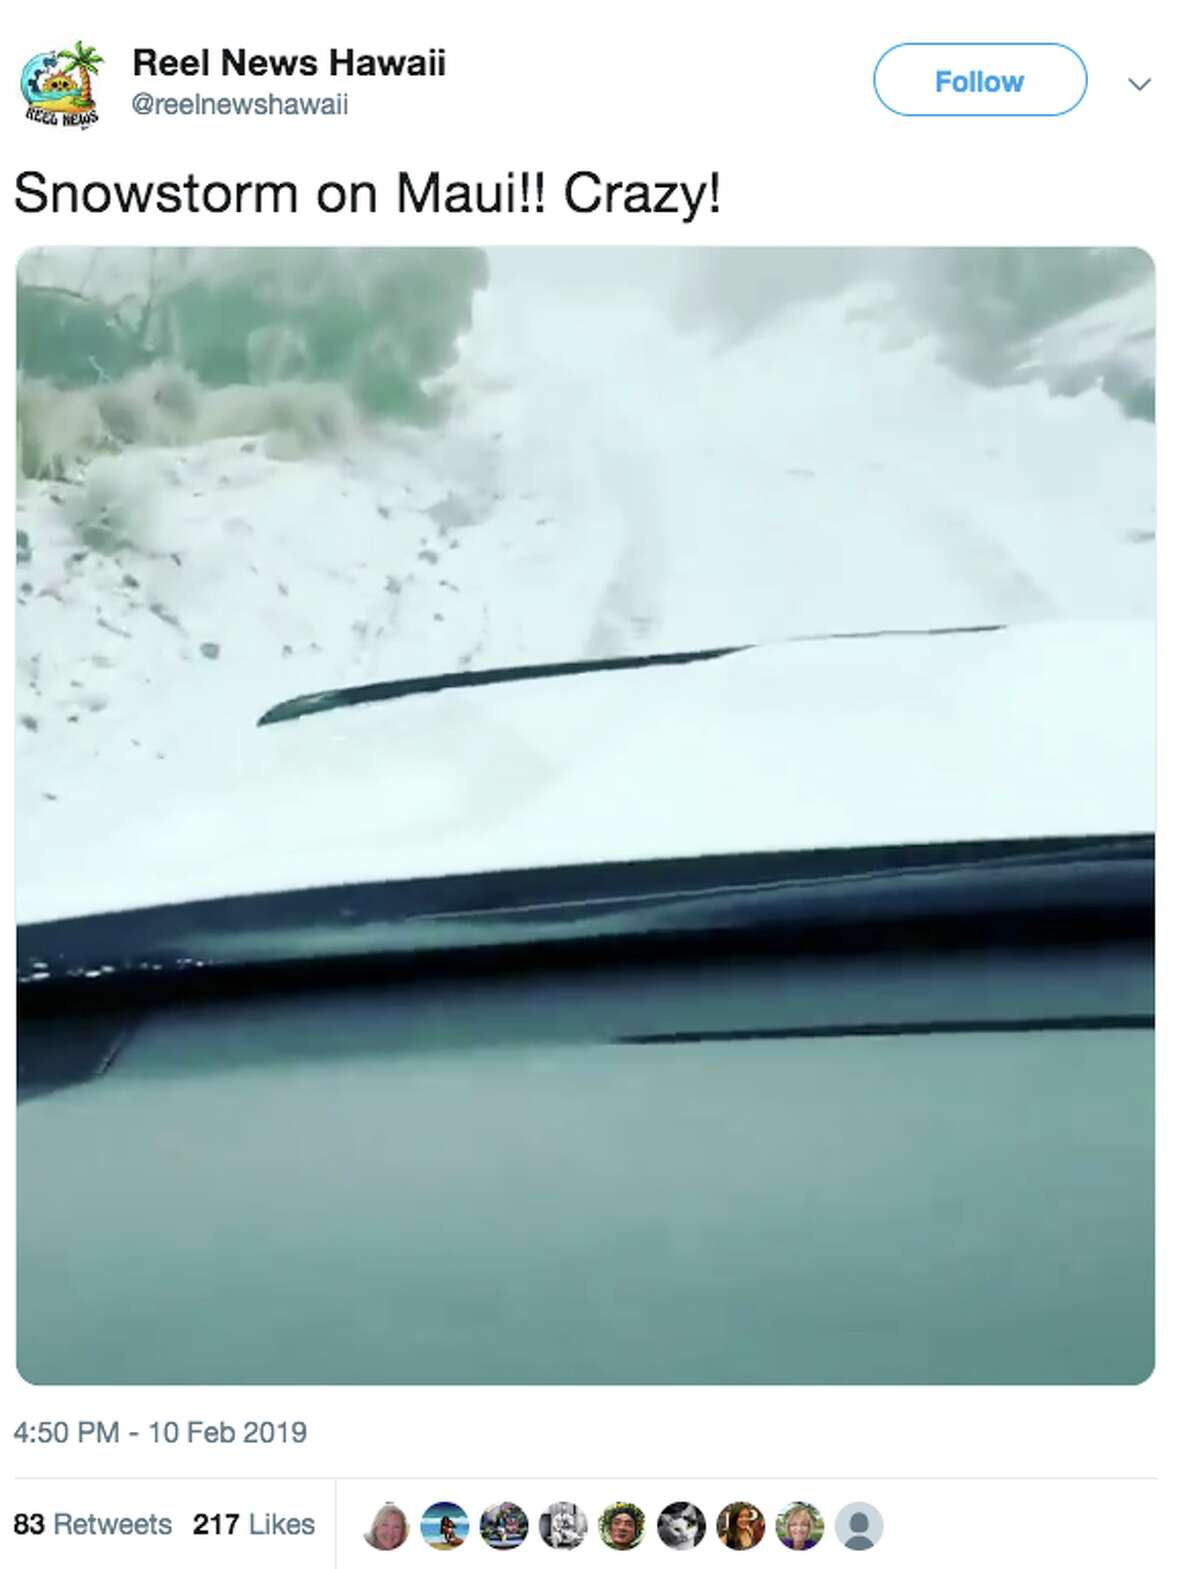 Reel News Hawaii posted a video of a motorist driving in snow on Haleakala at 10,000 feet on Maui.